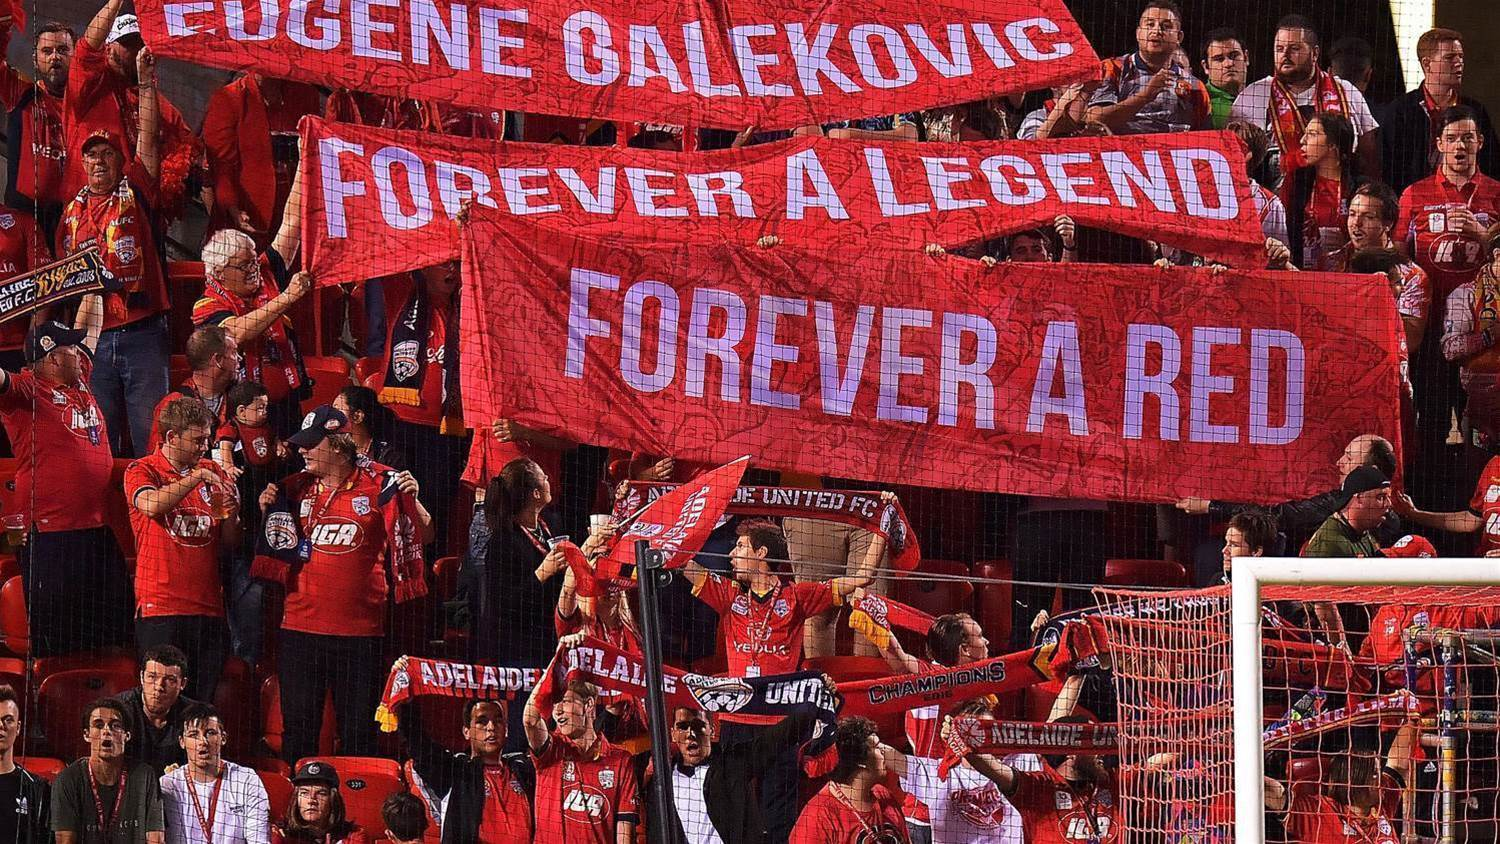 Reds legend moved by fans' tribute